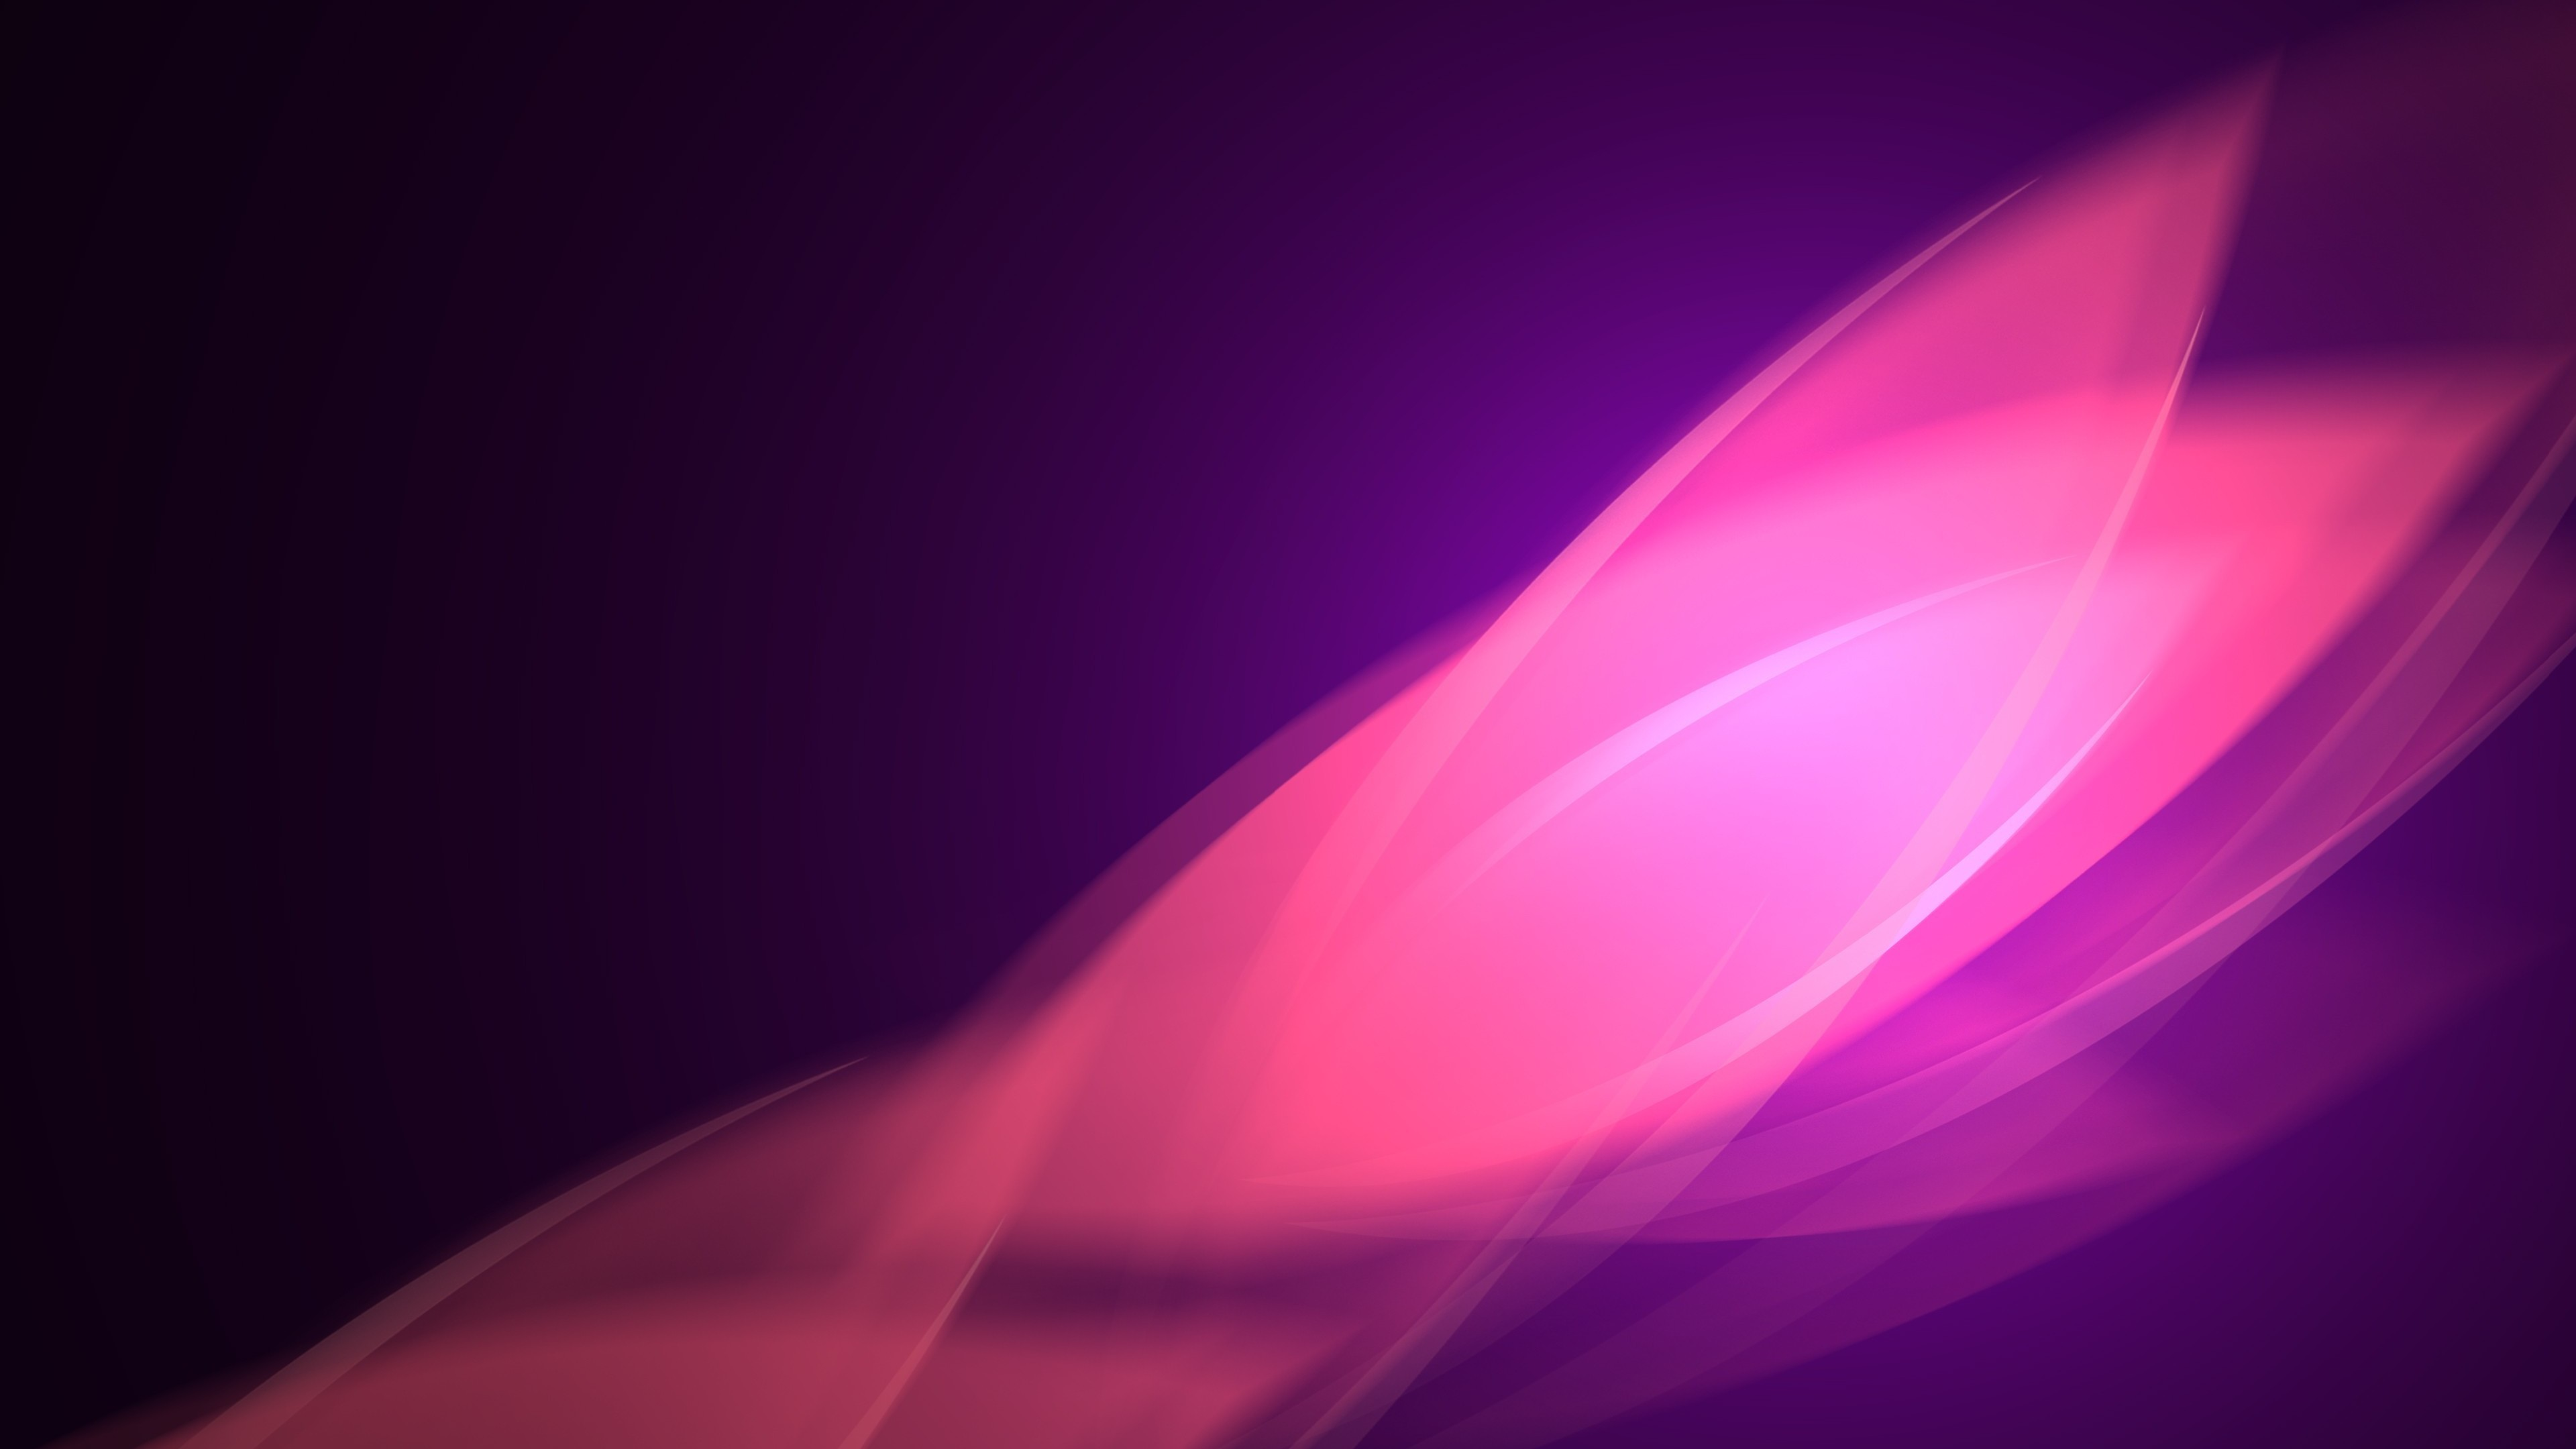 abstract flare 1539371005 - Abstract Flare - simple background wallpapers, hd-wallpapers, artwork wallpapers, abstract wallpapers